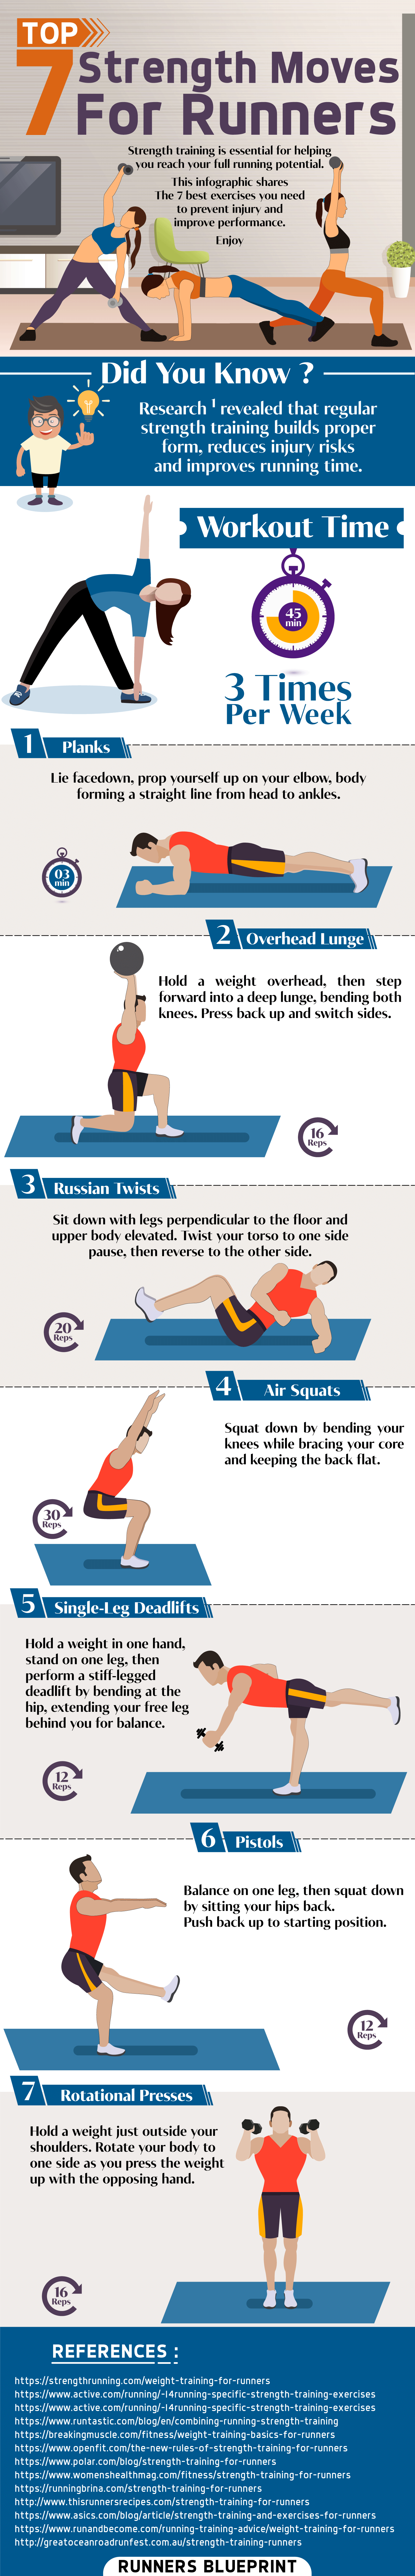 Strength Training For Runners The 7 Weight Training Exercises You Need